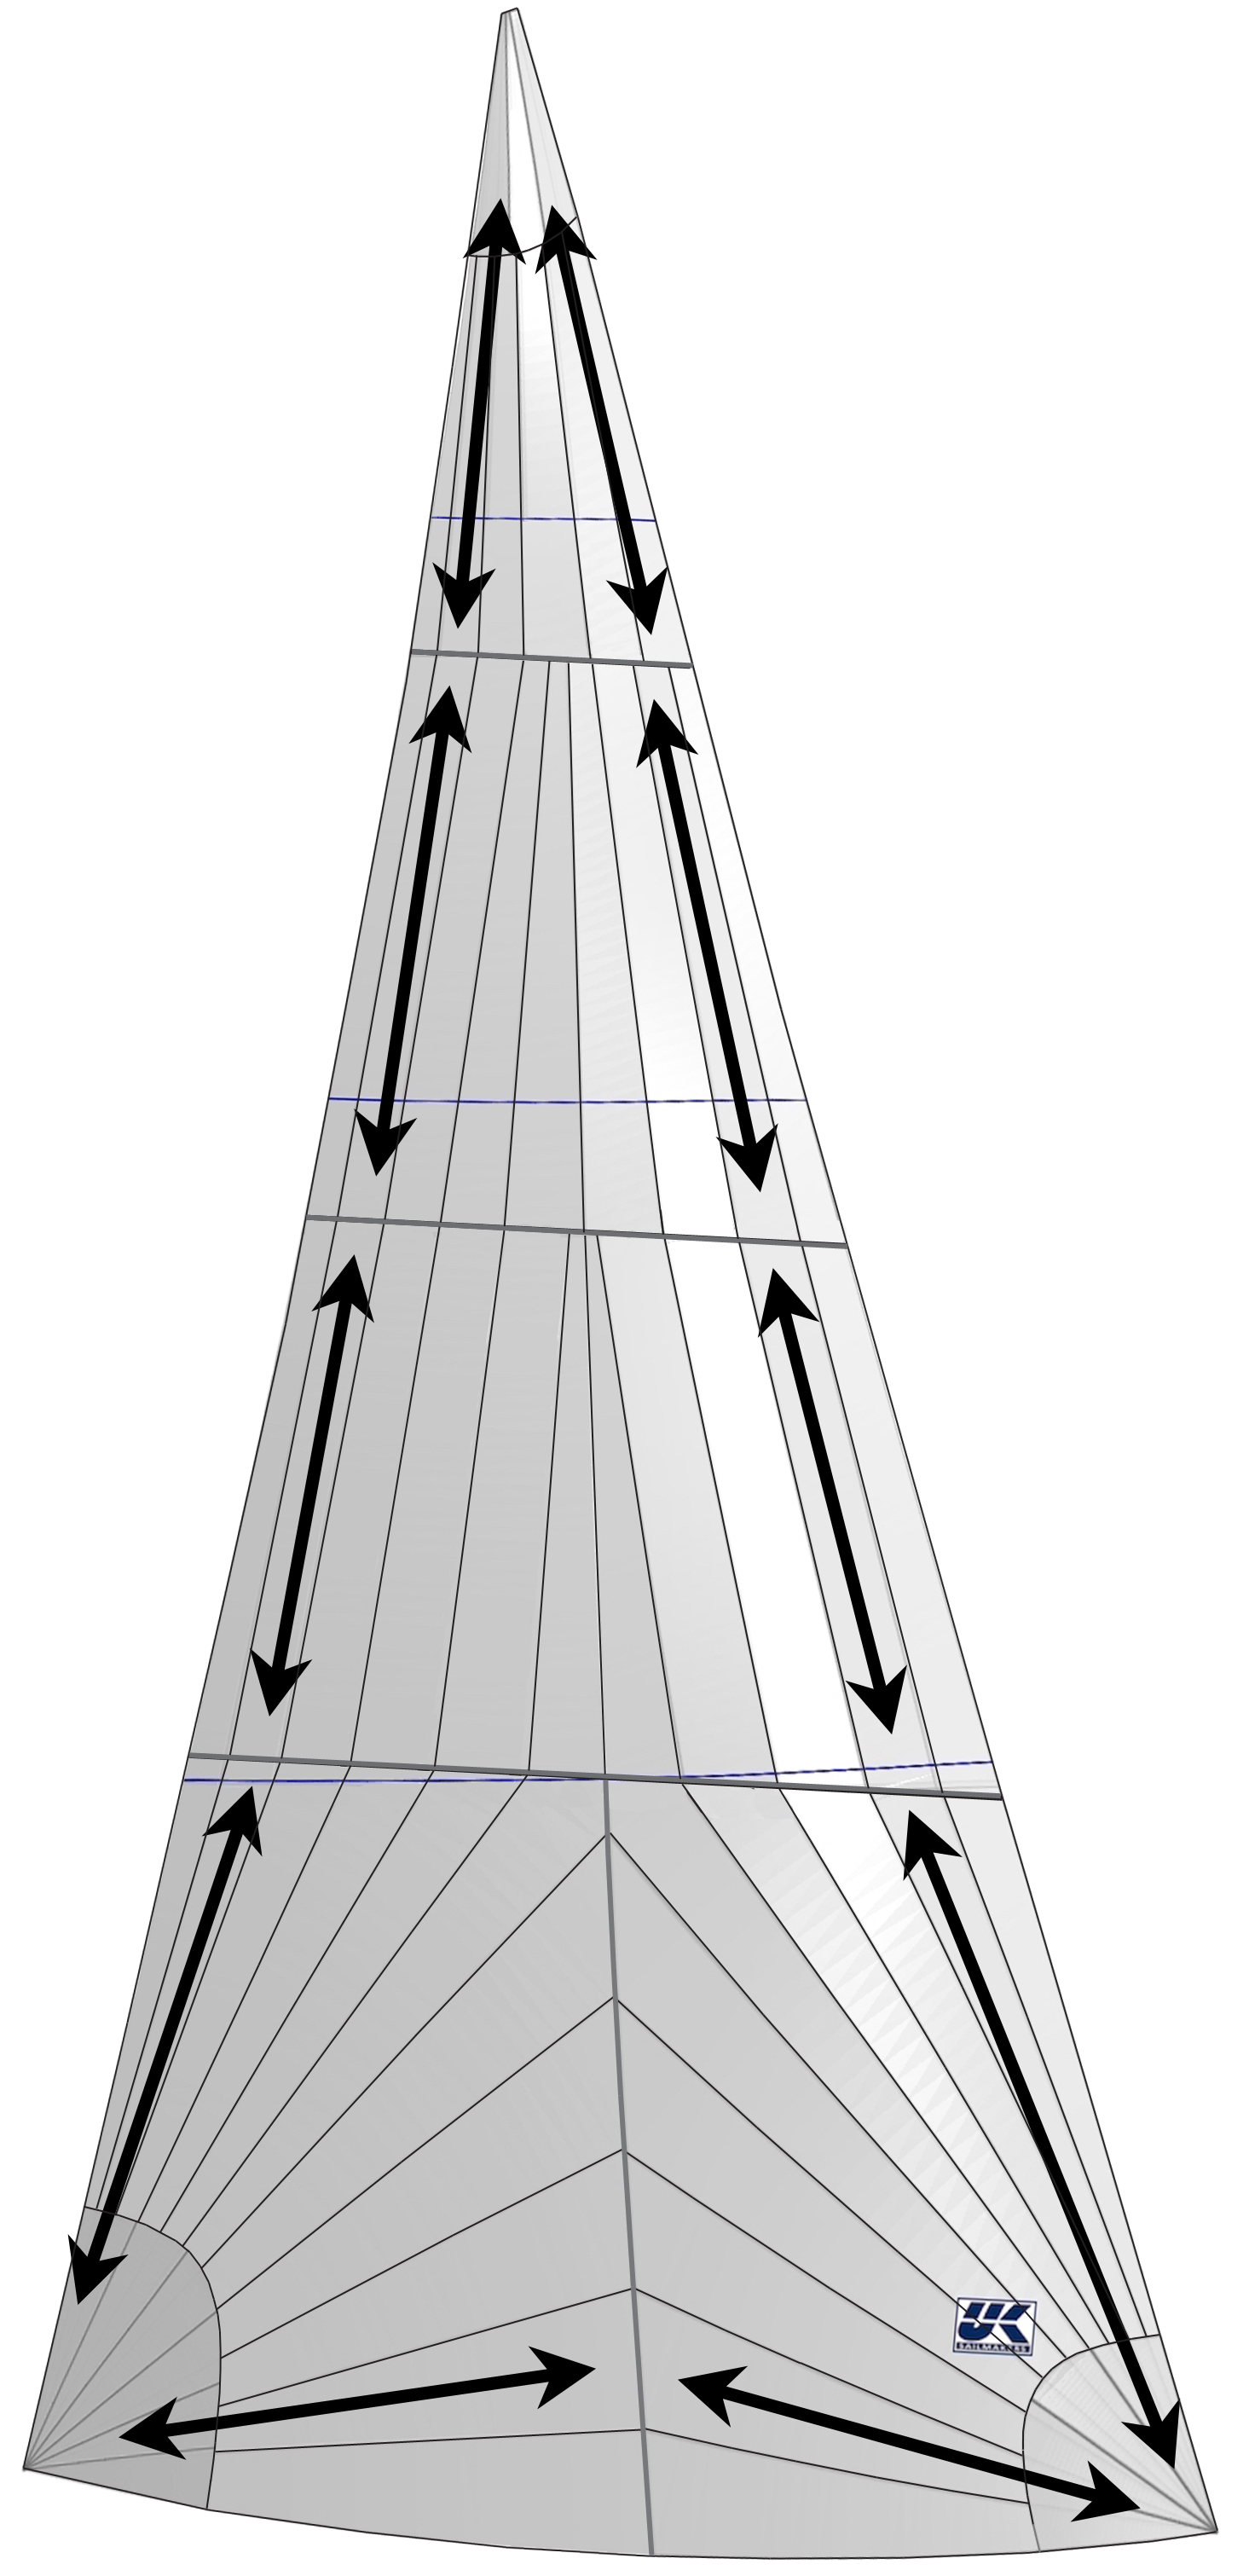 Radial layout approximately aligns the strongest yarns of the laminate with the primary loads that run between the corners of the sail.